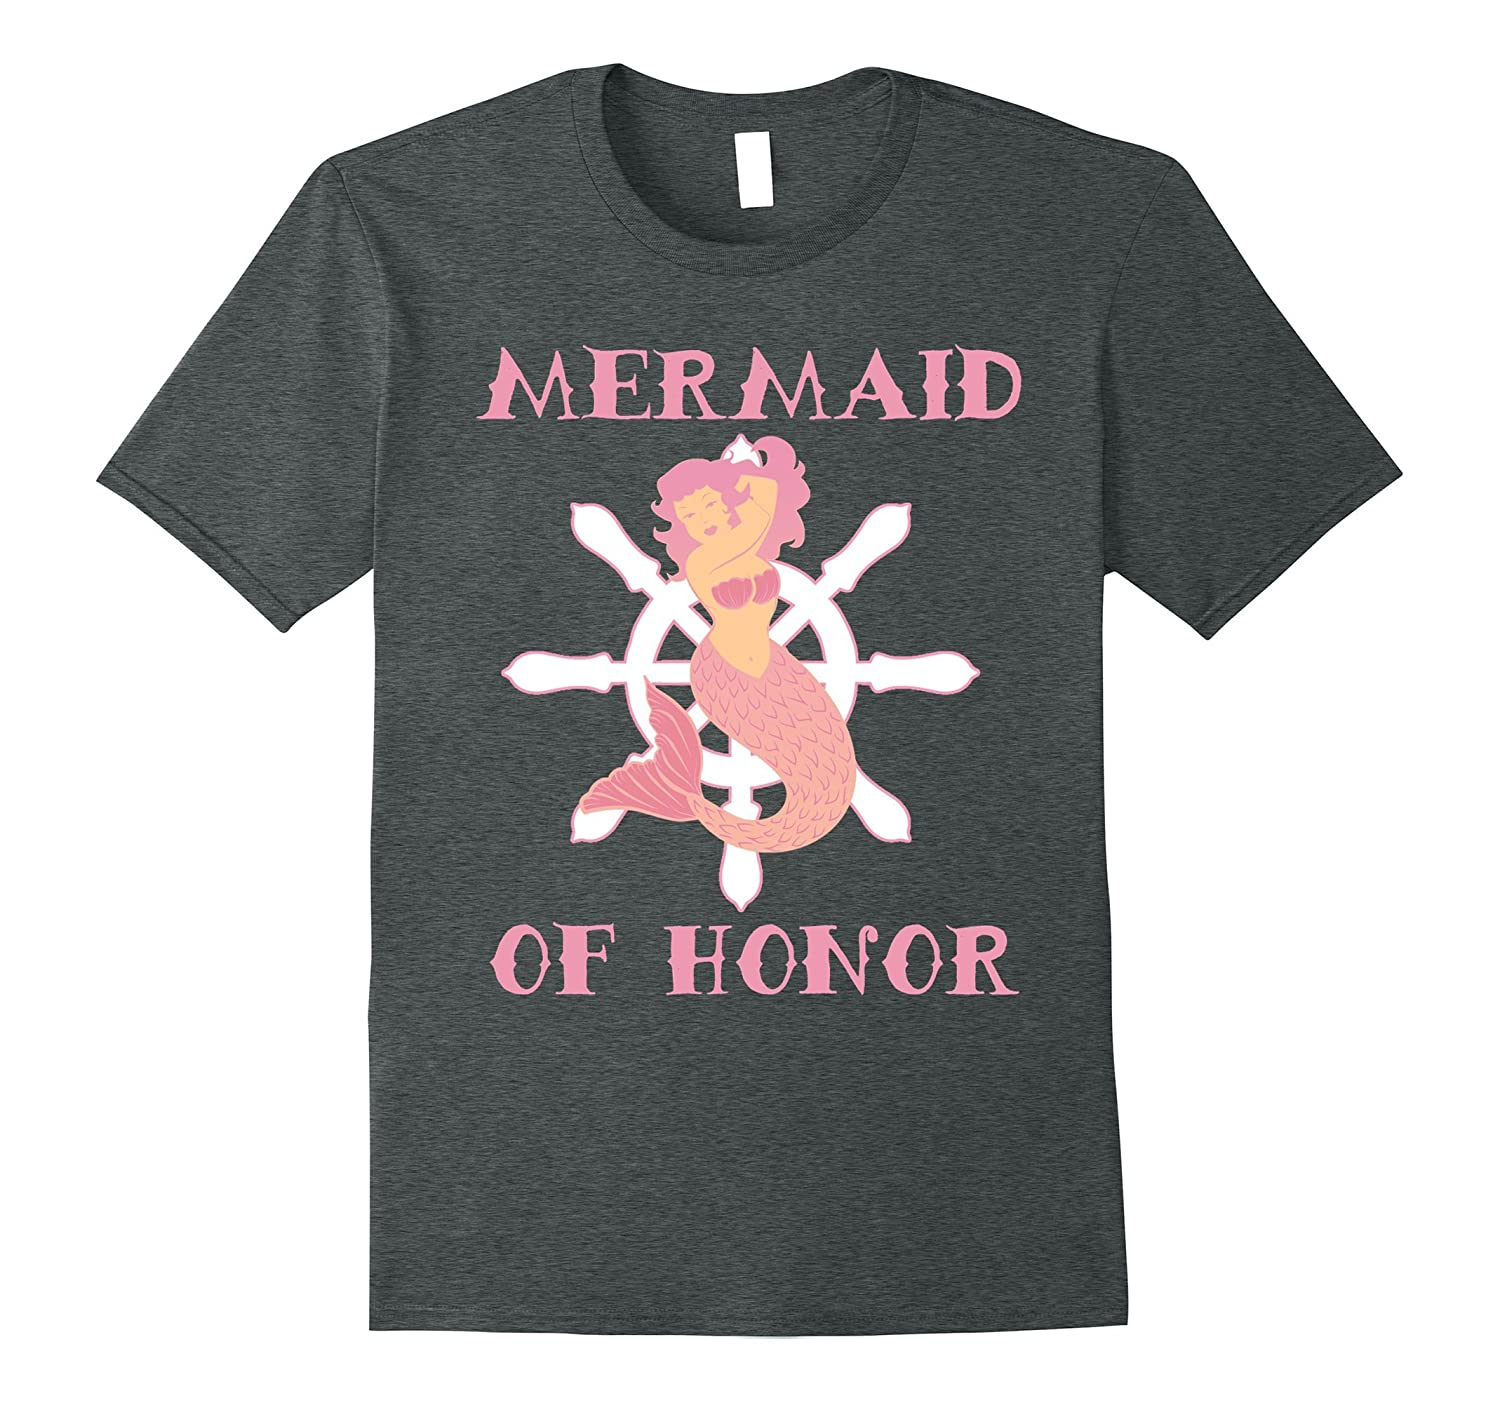 0964affd8 Mermaid Graphic Tee Women Bridal Party Maid of Honor Shirt-TJ – theteejob